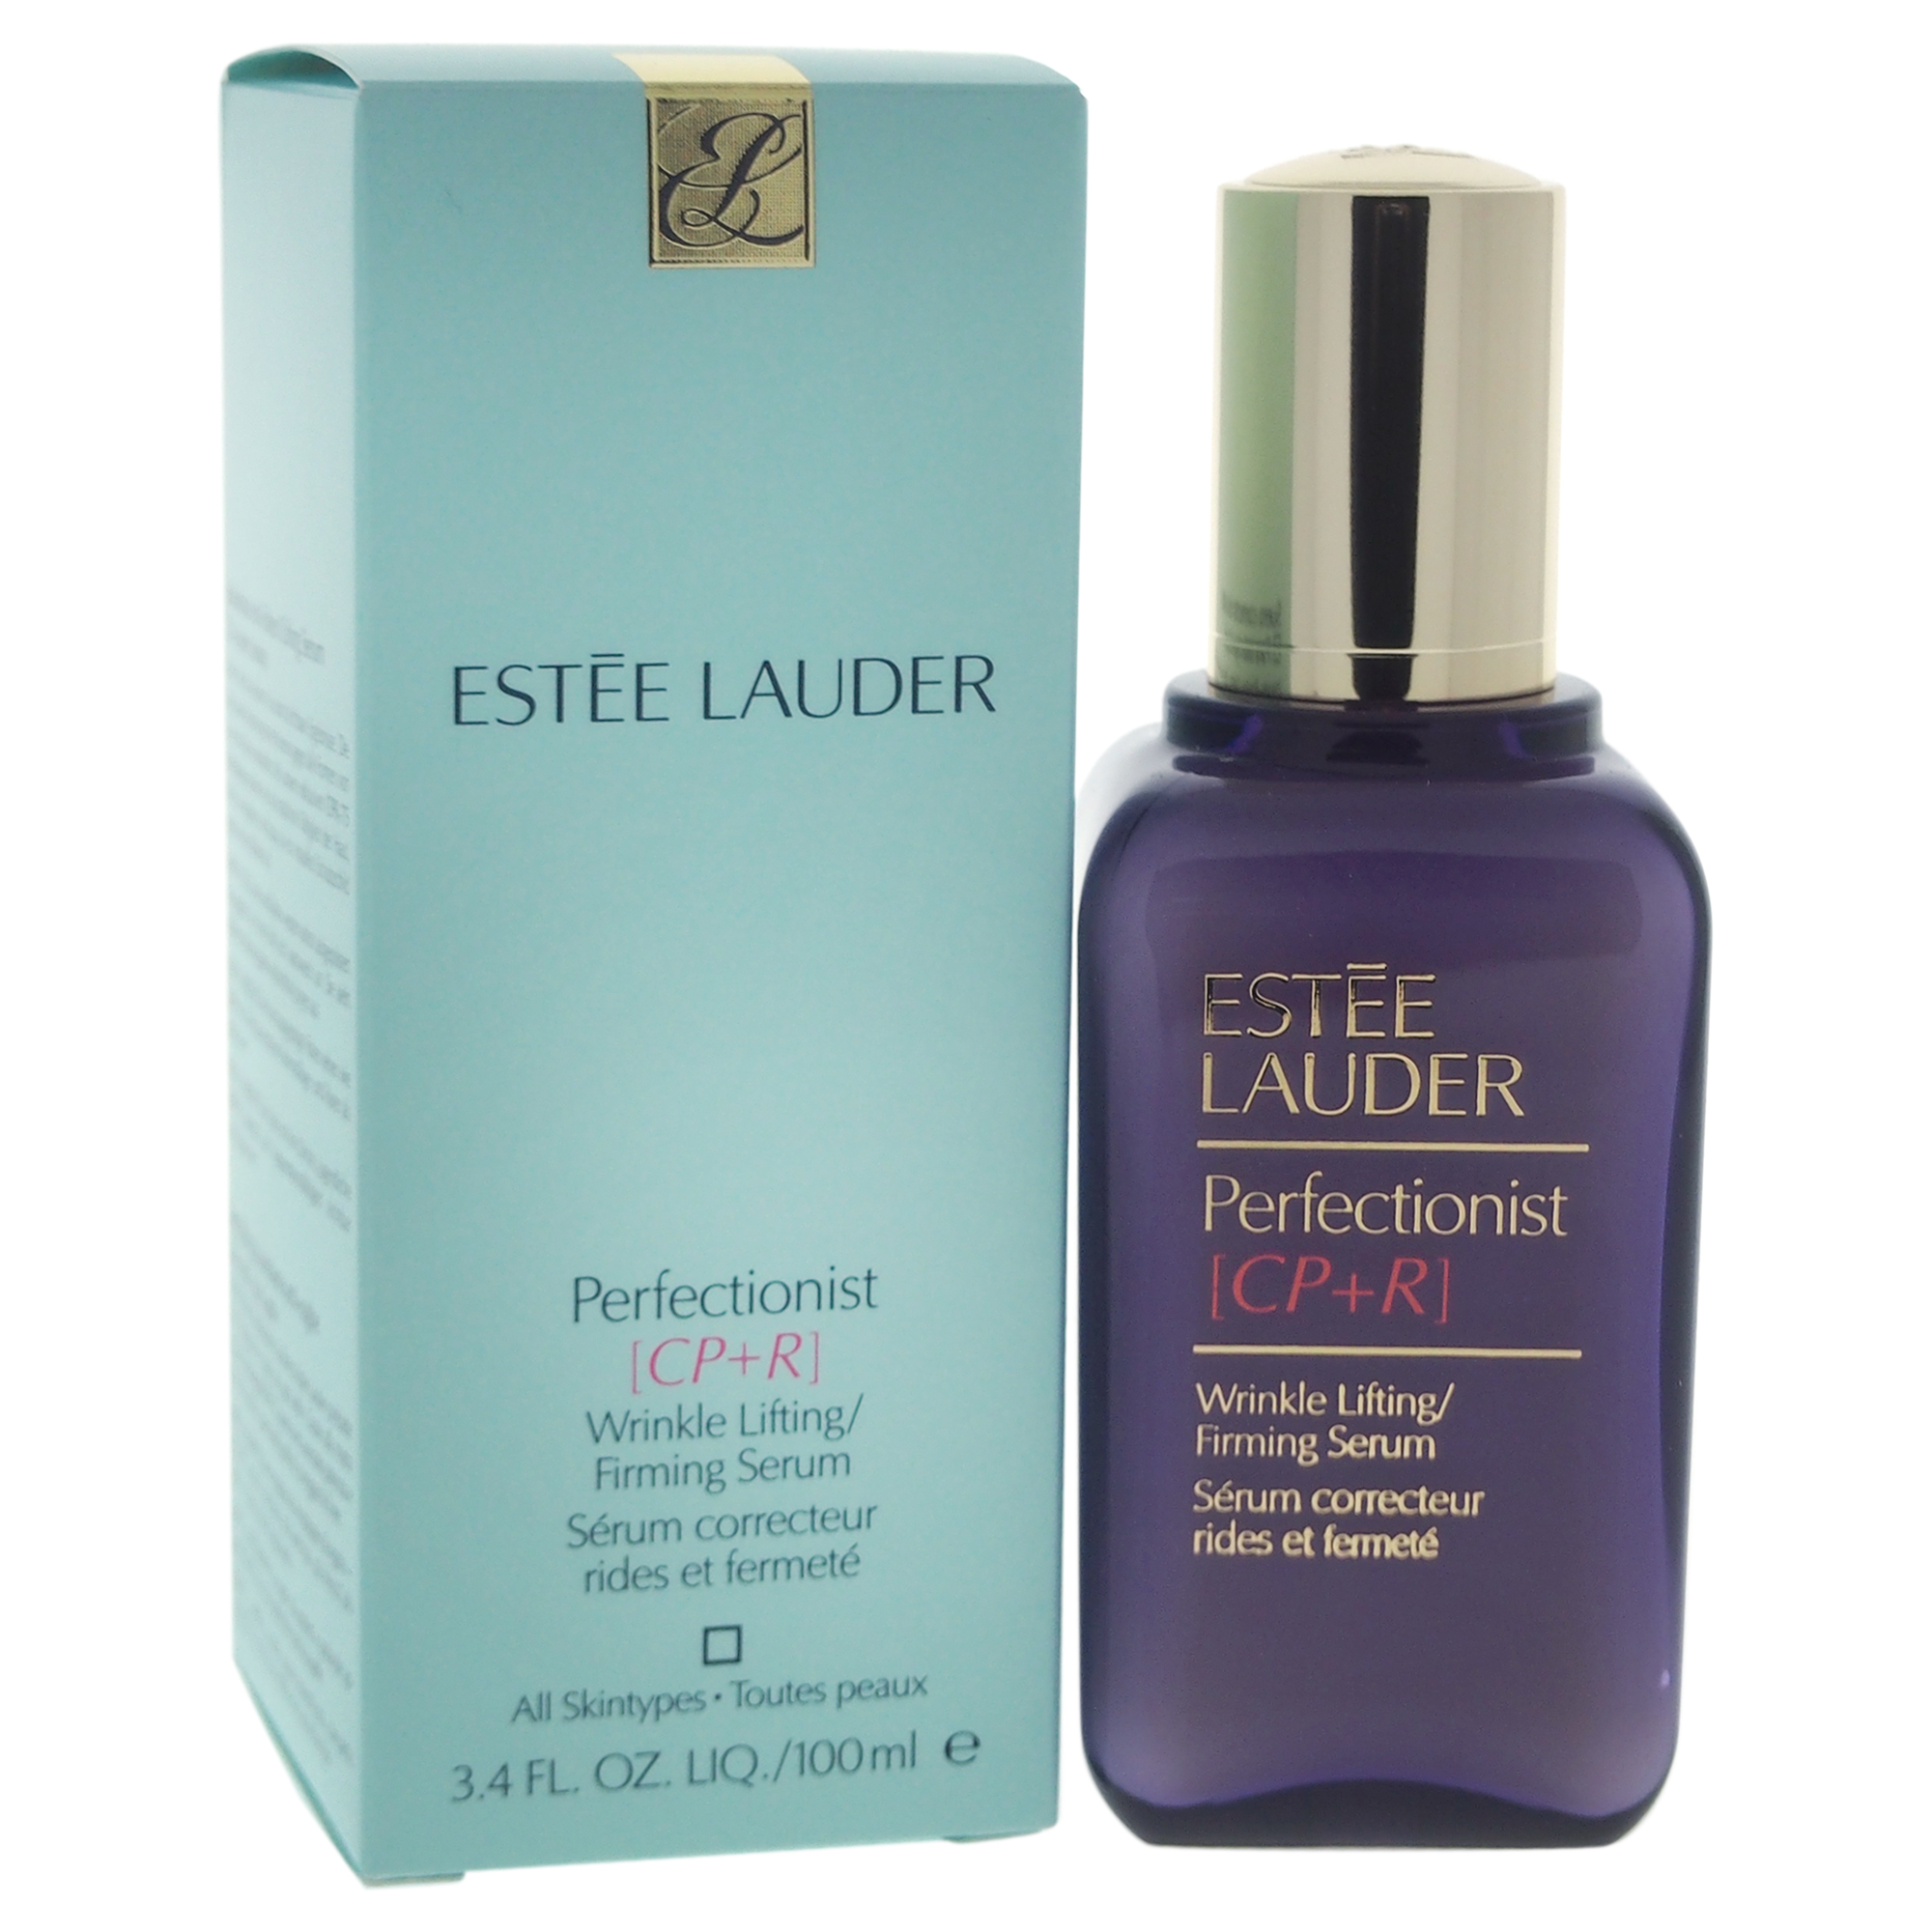 Perfectionist (CP+R) Wrinkle Lifting Firming Serum by Estee Lauder for Unisex - 3.4 oz Serum